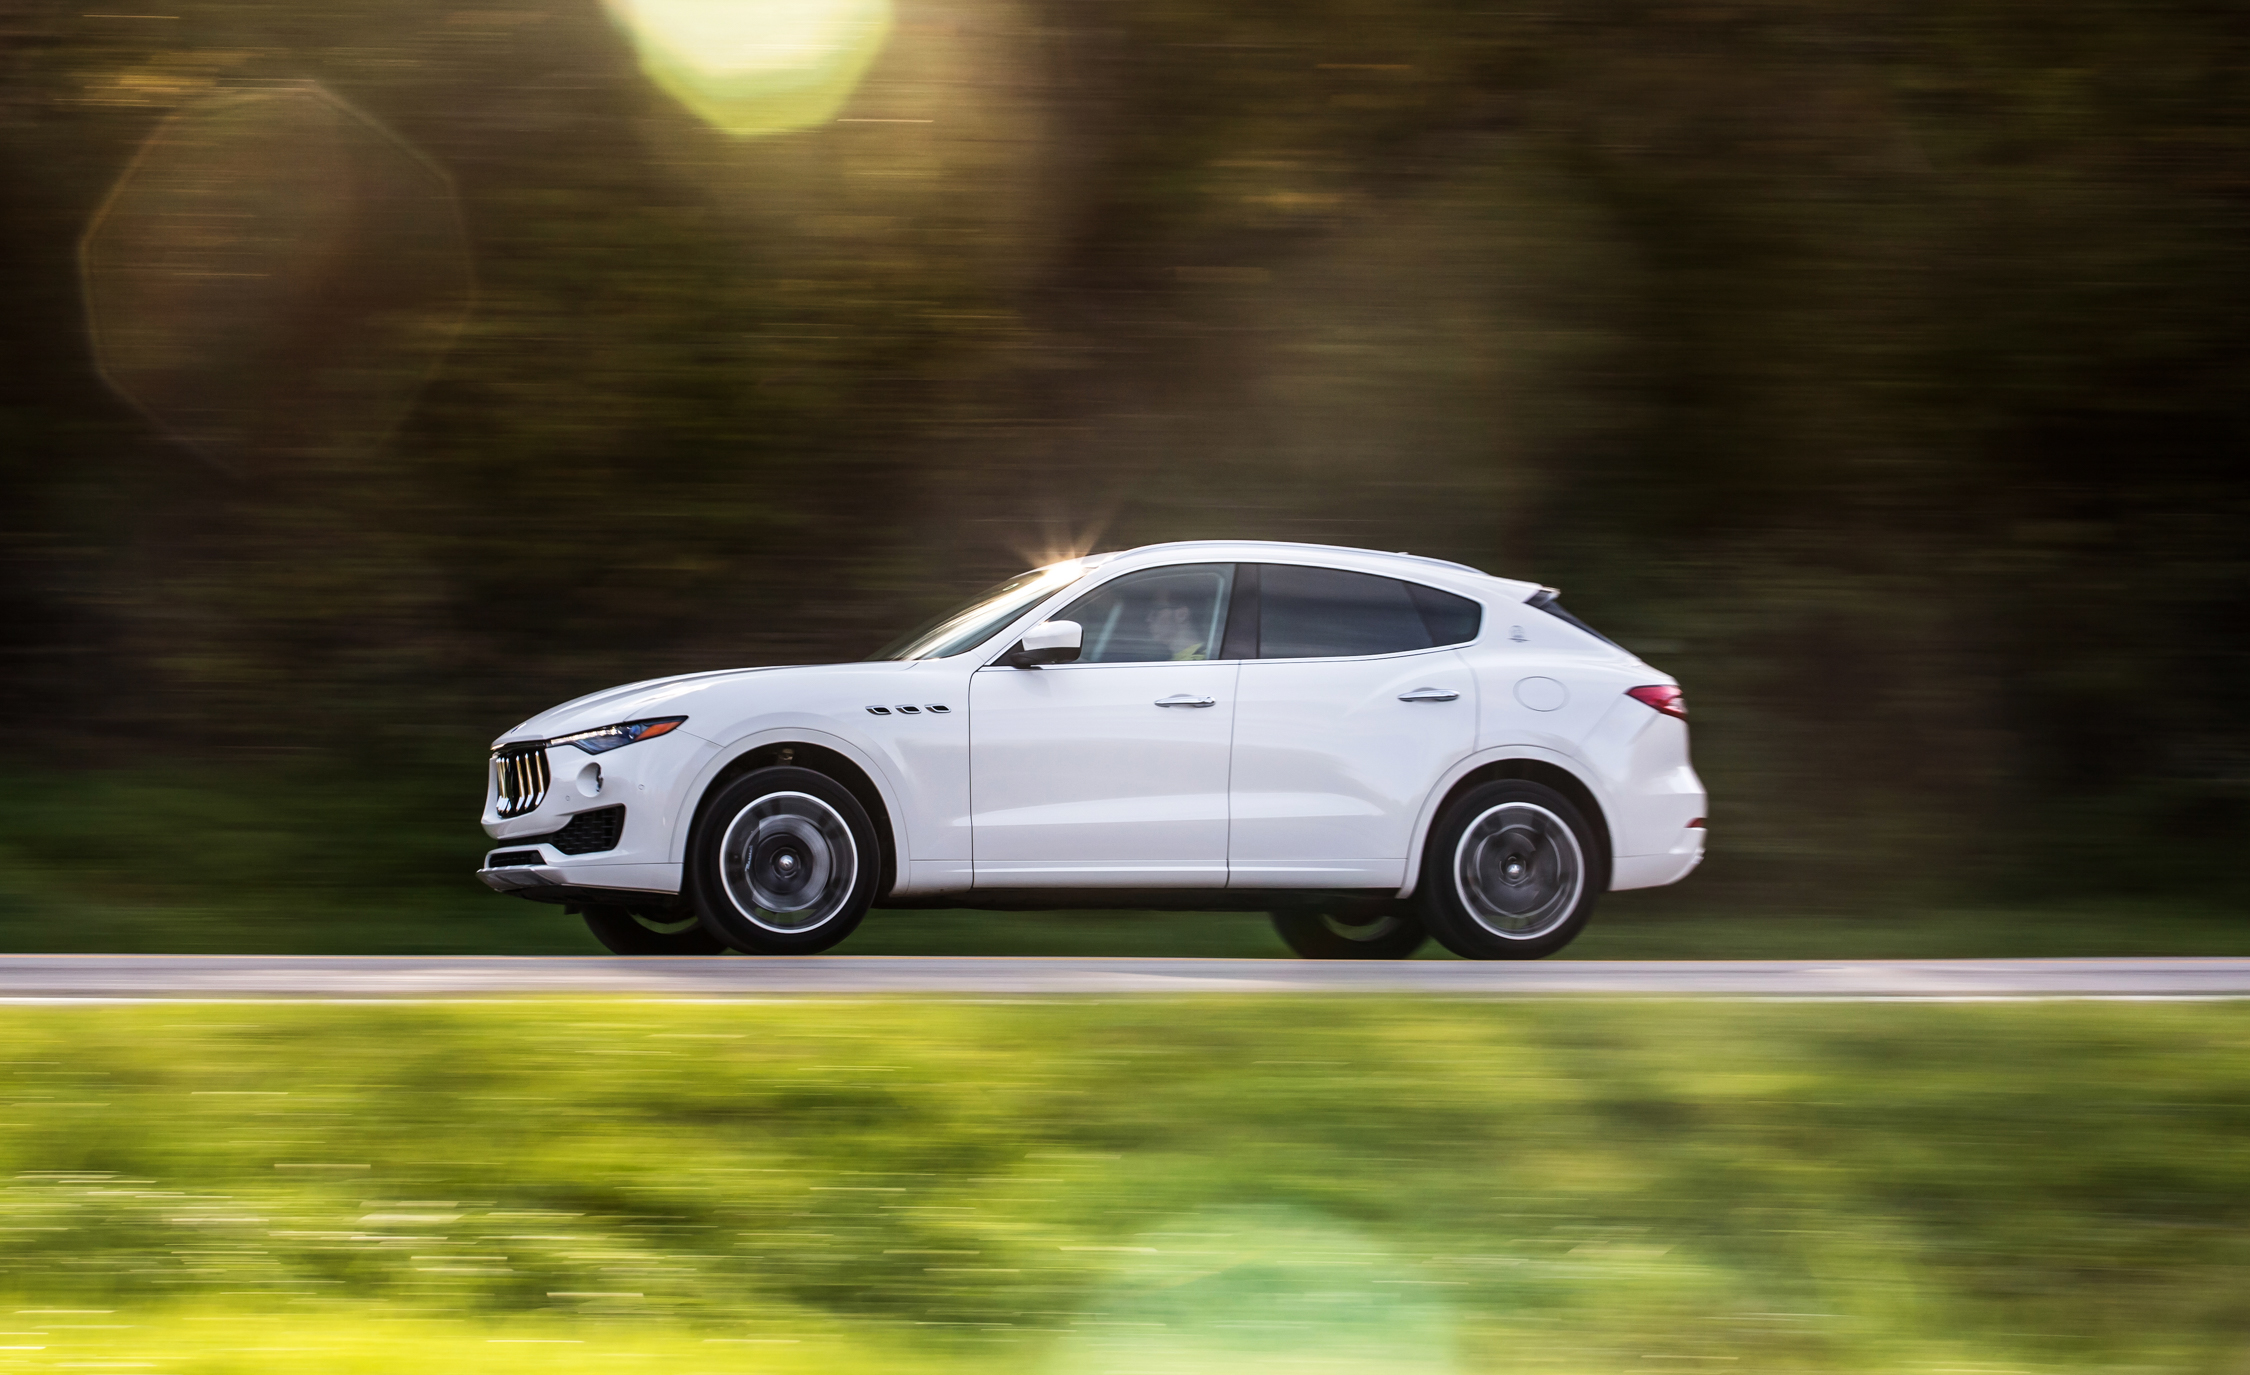 2017 Maserati Levante S Q4 Test Drive (Photo 15 of 21)